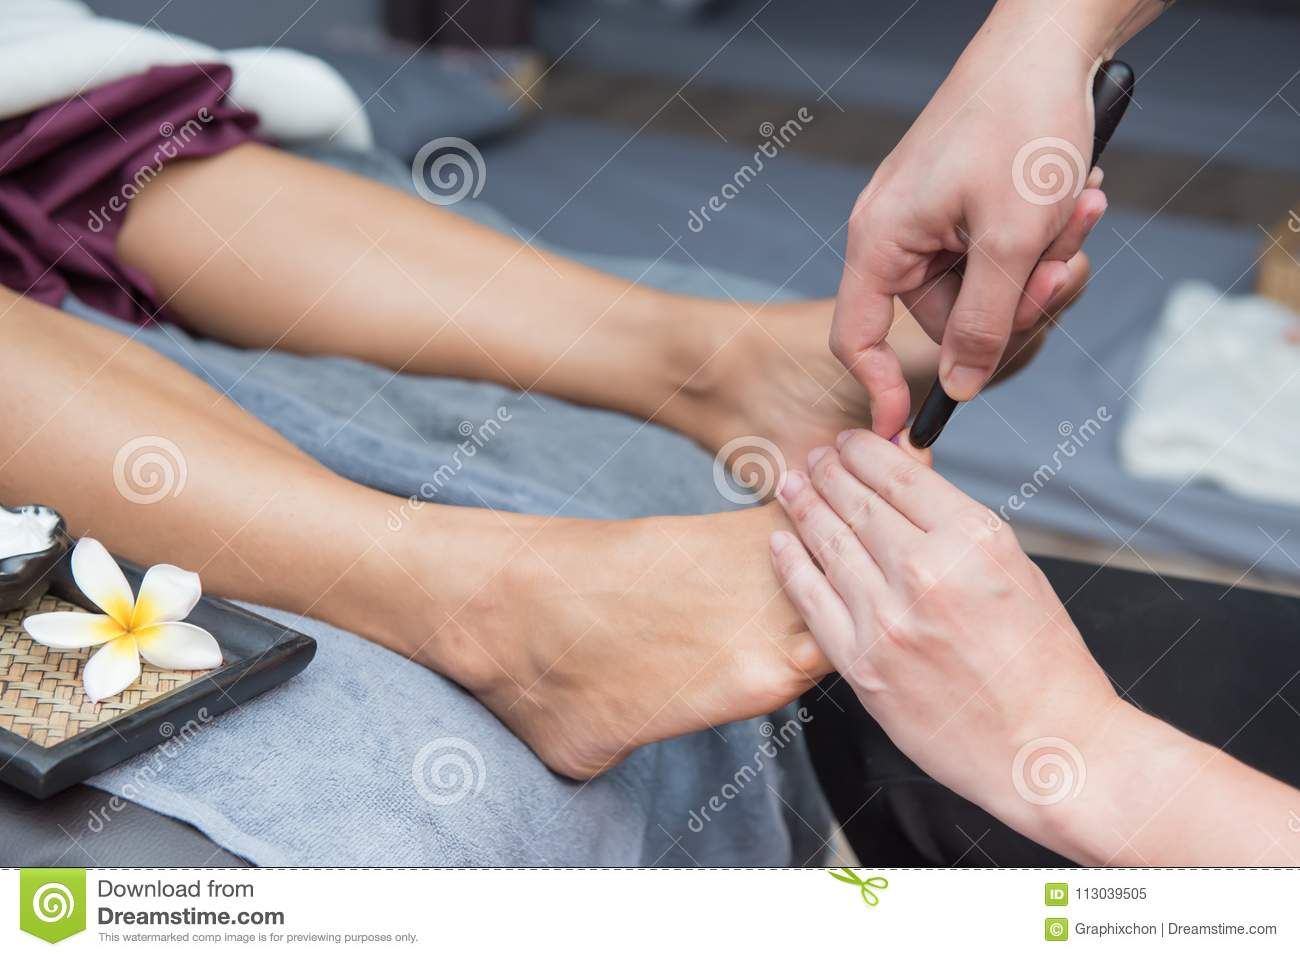 spa-thai-foot-massage-spa-thai-foot-massage-beautiful-women-relaxing-healthy-aromatherapy-113039505 The Way Massage Can Lower Stress And Improve Your Quality of Life